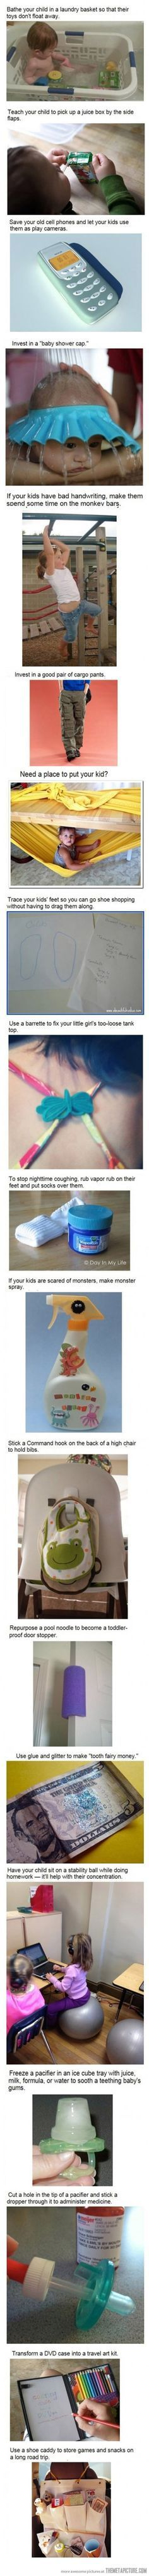 Don't have any kids, might use some of these for myself